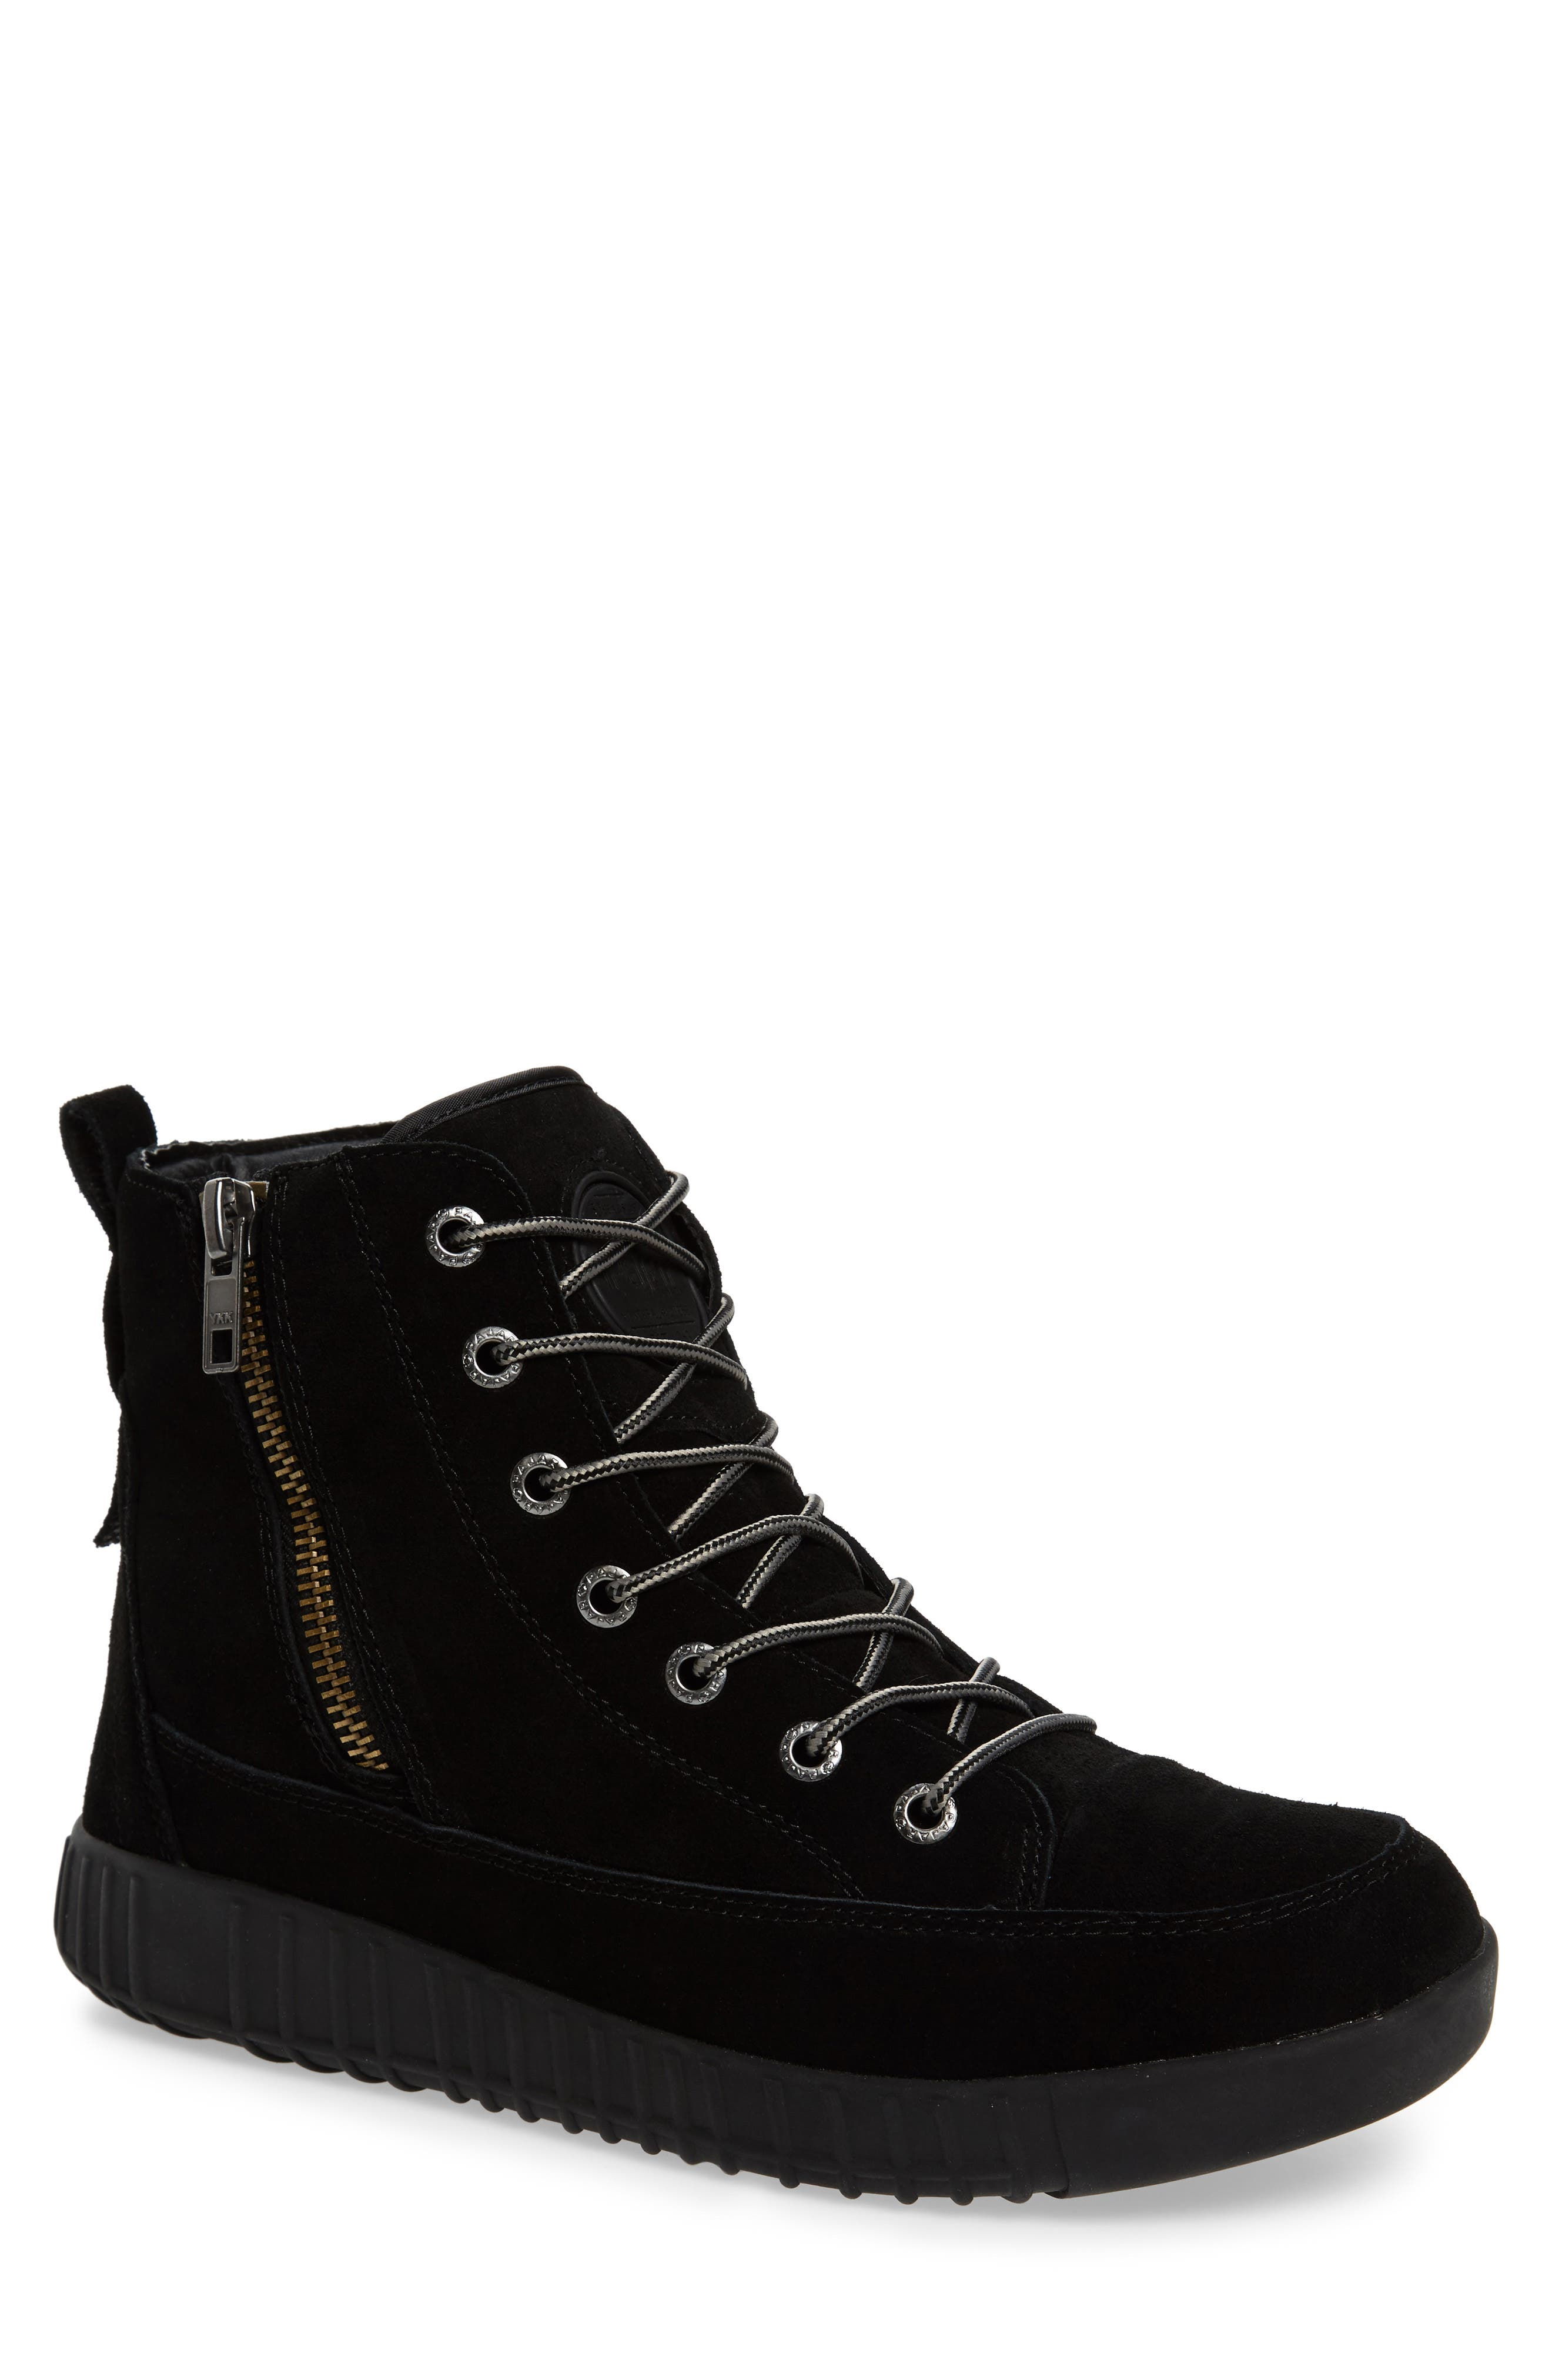 Parnell Waterproof Winter Sneaker,                         Main,                         color, Black Leather